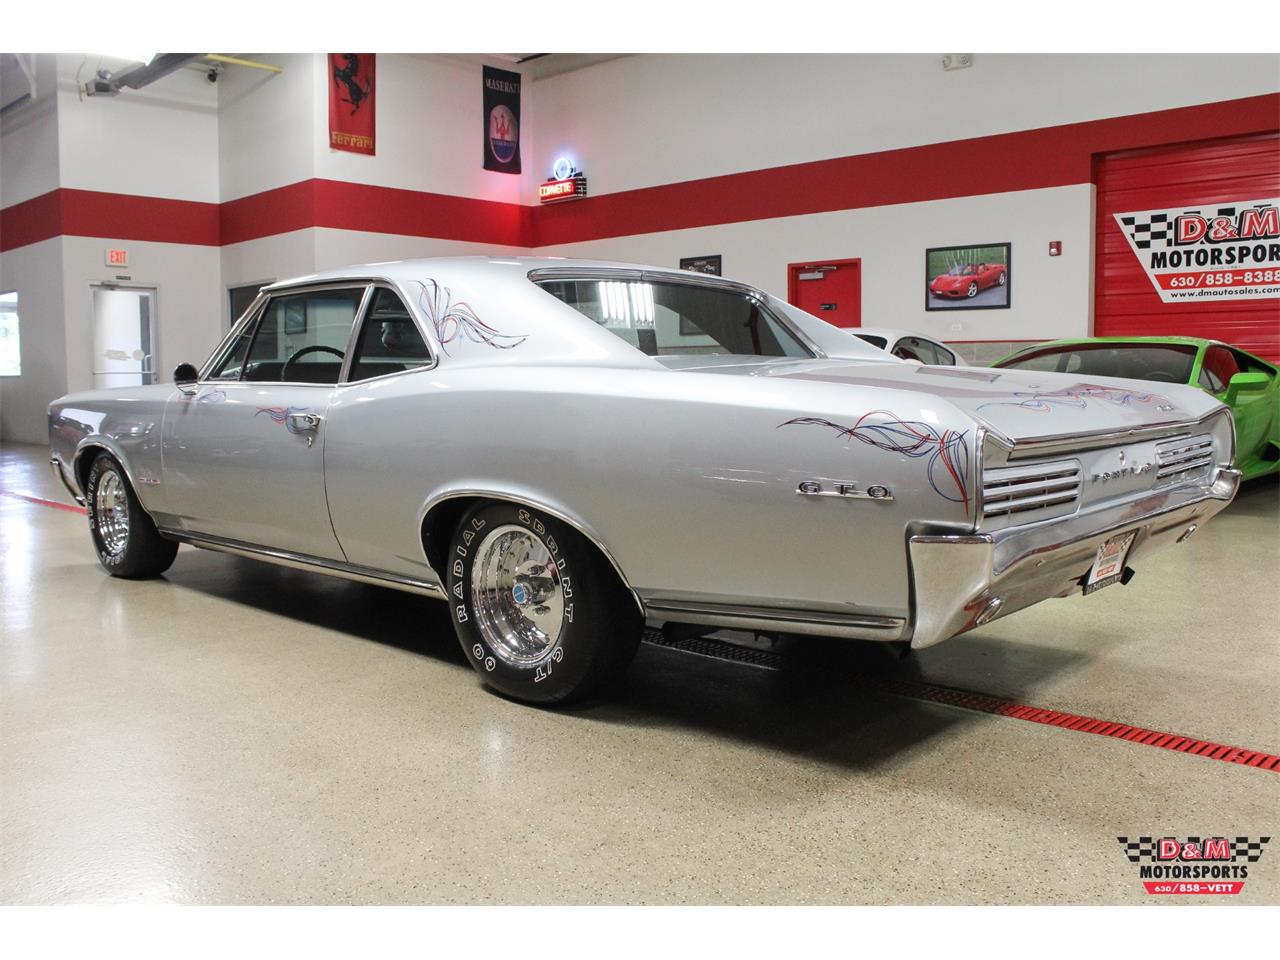 Large Picture of '66 GTO located in Illinois Offered by D & M Motorsports - O7FS